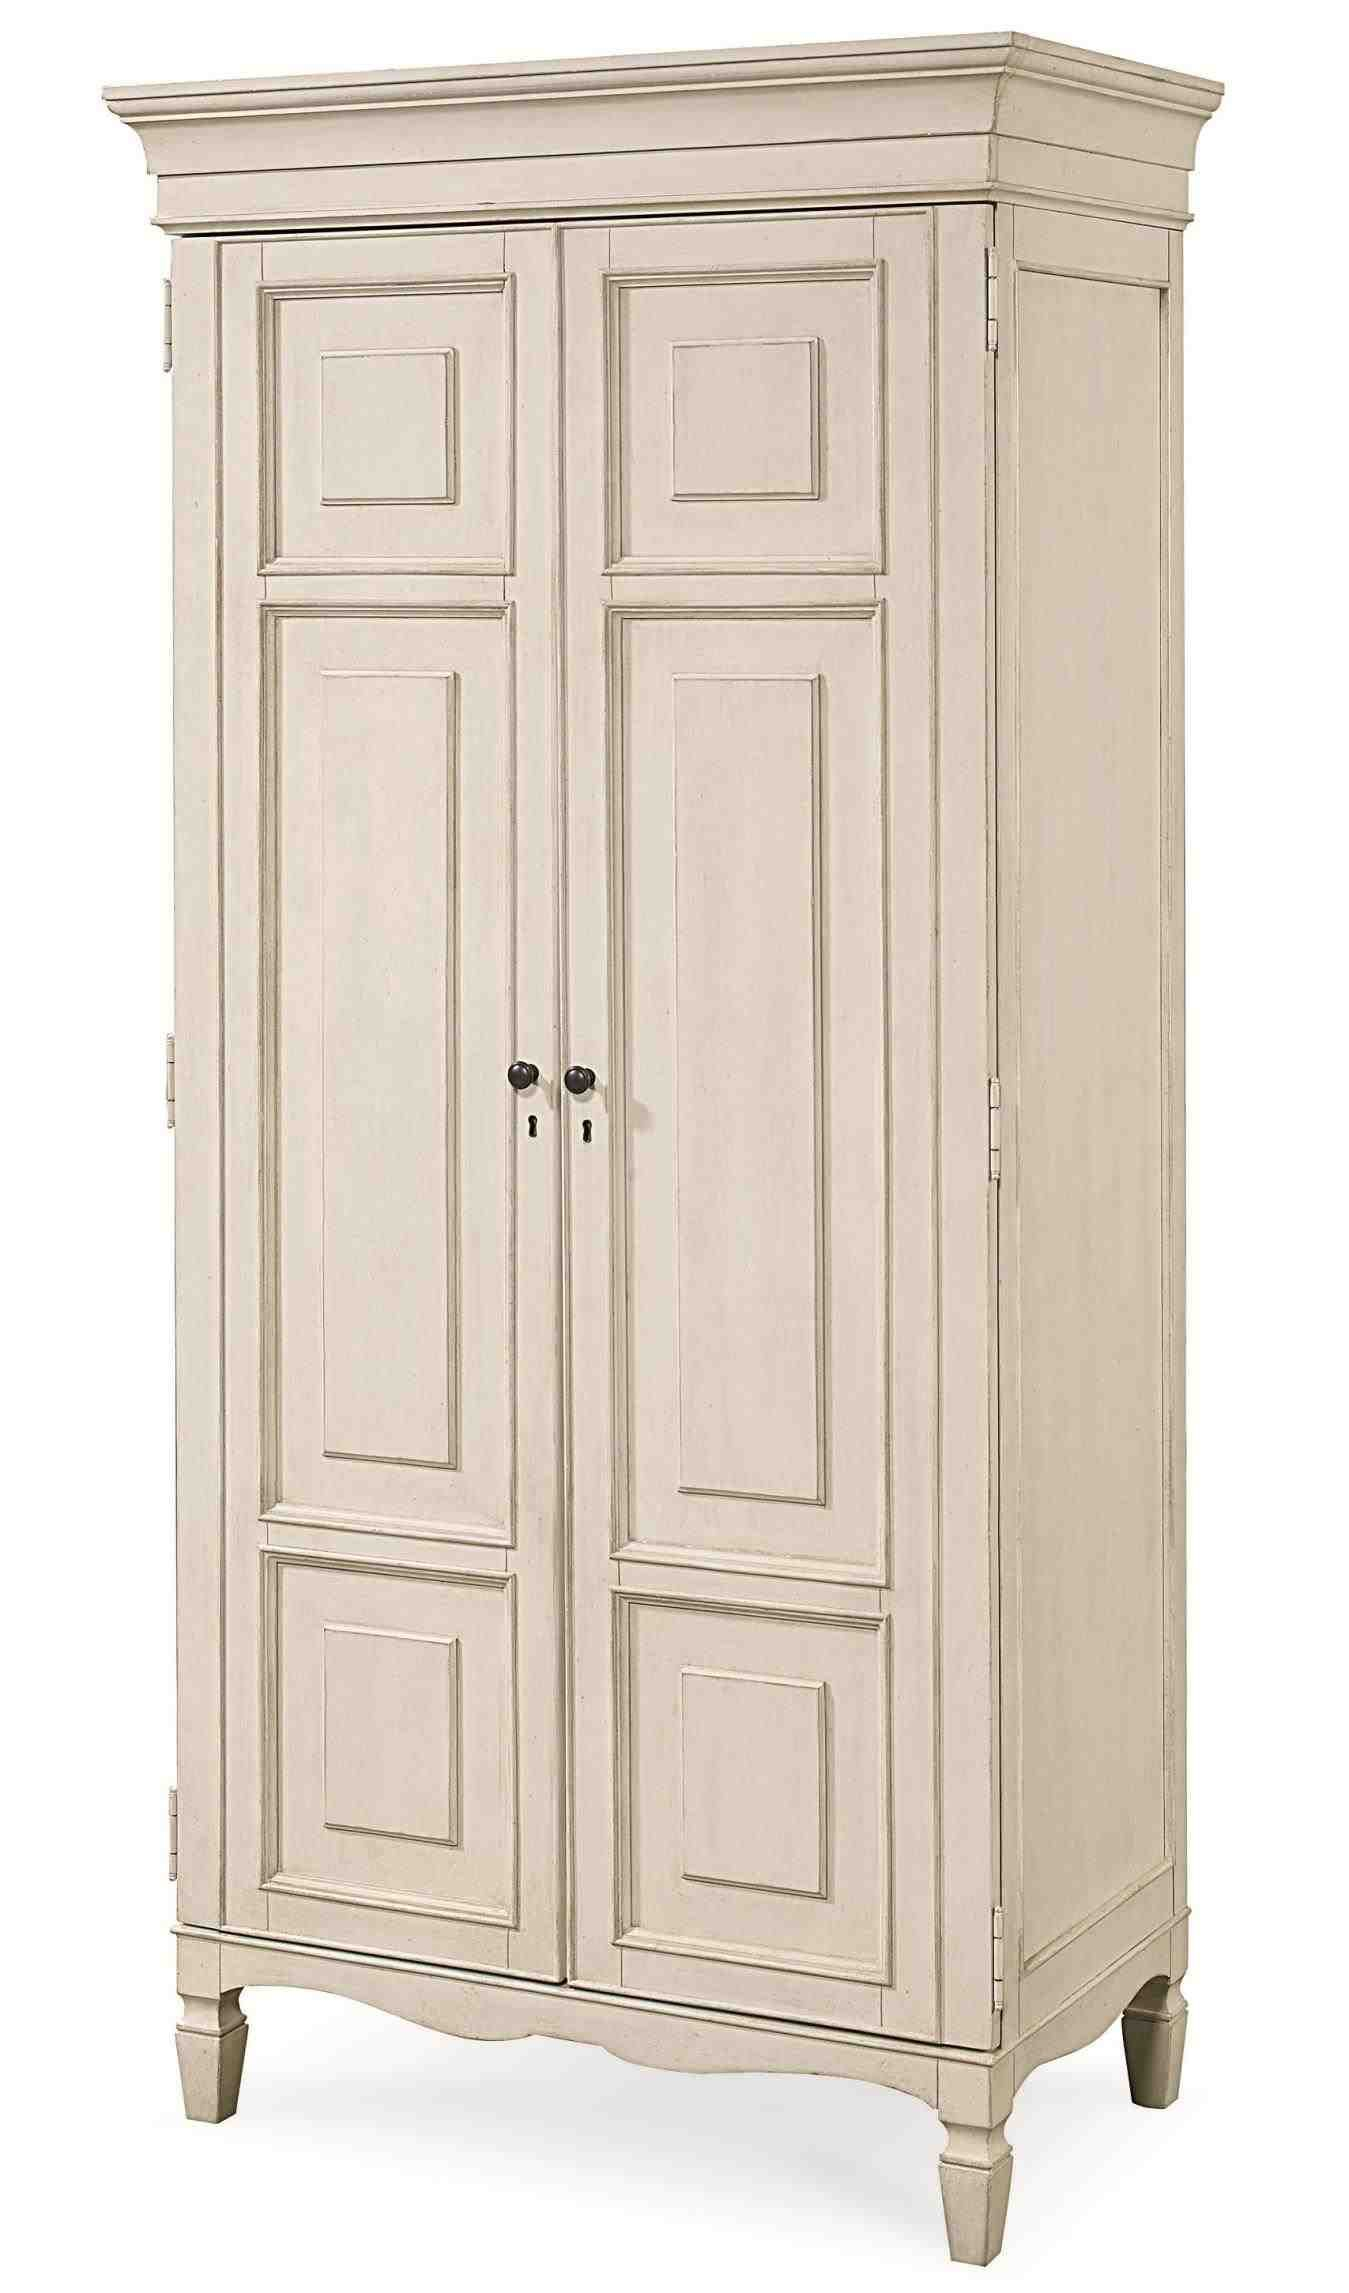 Tall Accent Cabinets Tall Cabinet Storage Accent Storage Cabinet Tv Cabinets With Doors